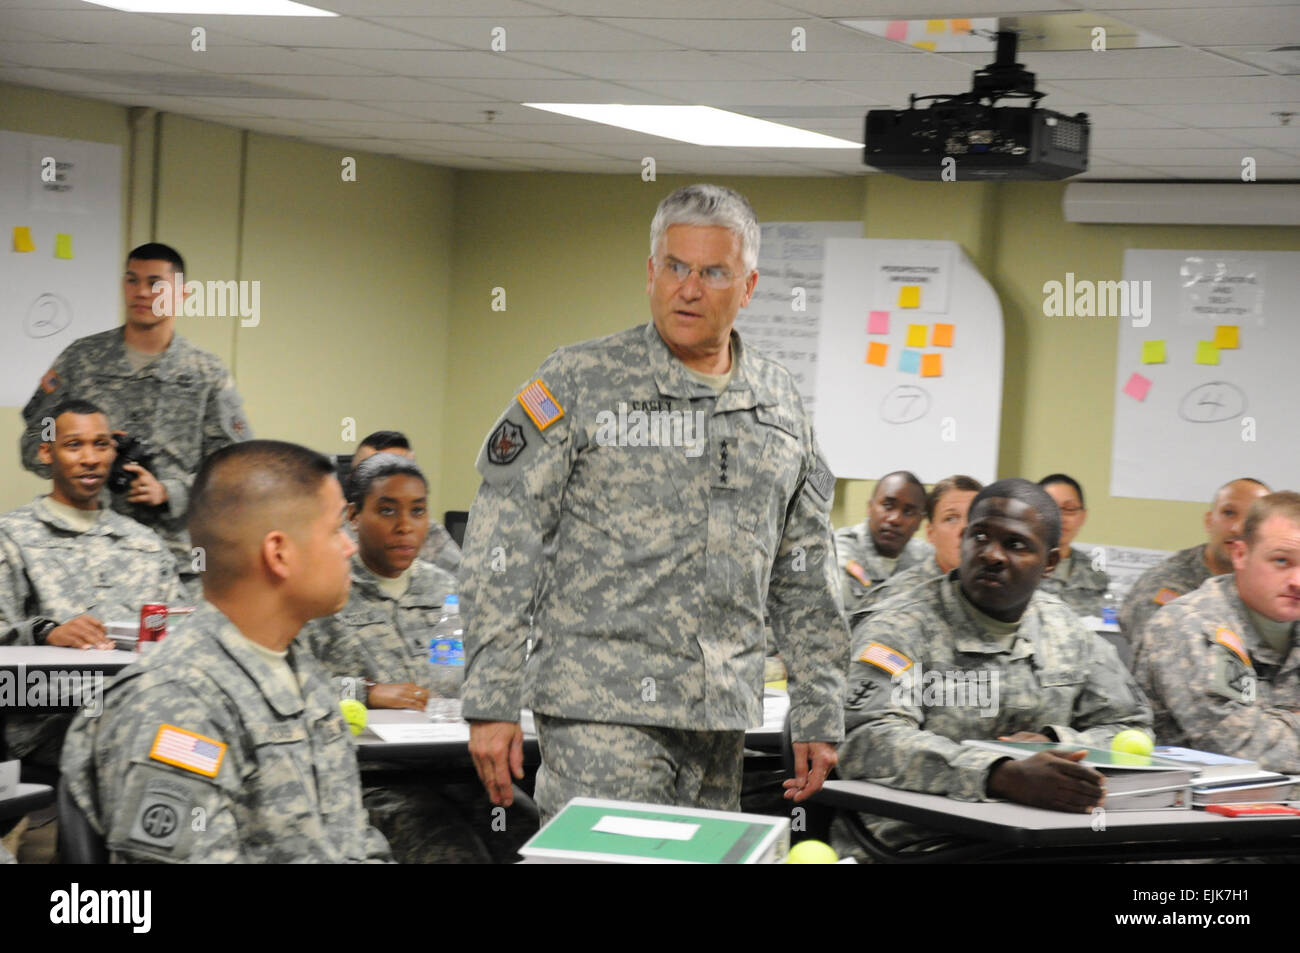 Gen. George W. Casey, speaks with Master Resilience Training School students during a recent visit to Fort Jackson, - Stock Image